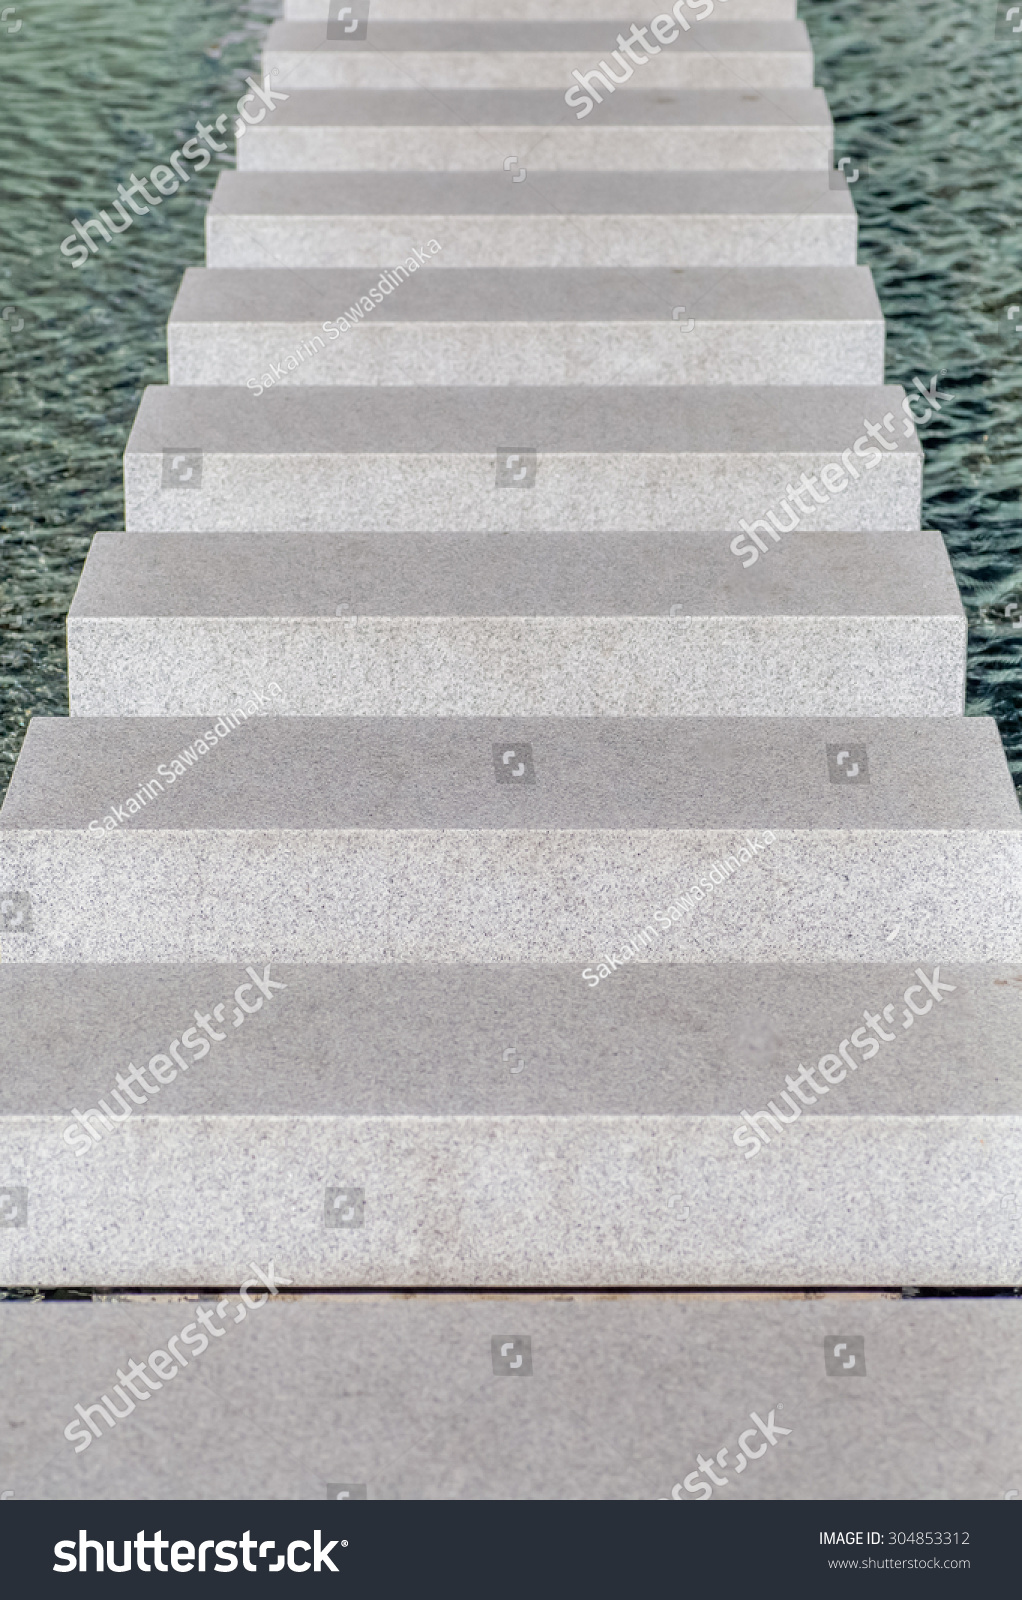 Close Up Of Empty Modern Concrete Staircase Or Stair With Metal Rail  Ascending | EZ Canvas